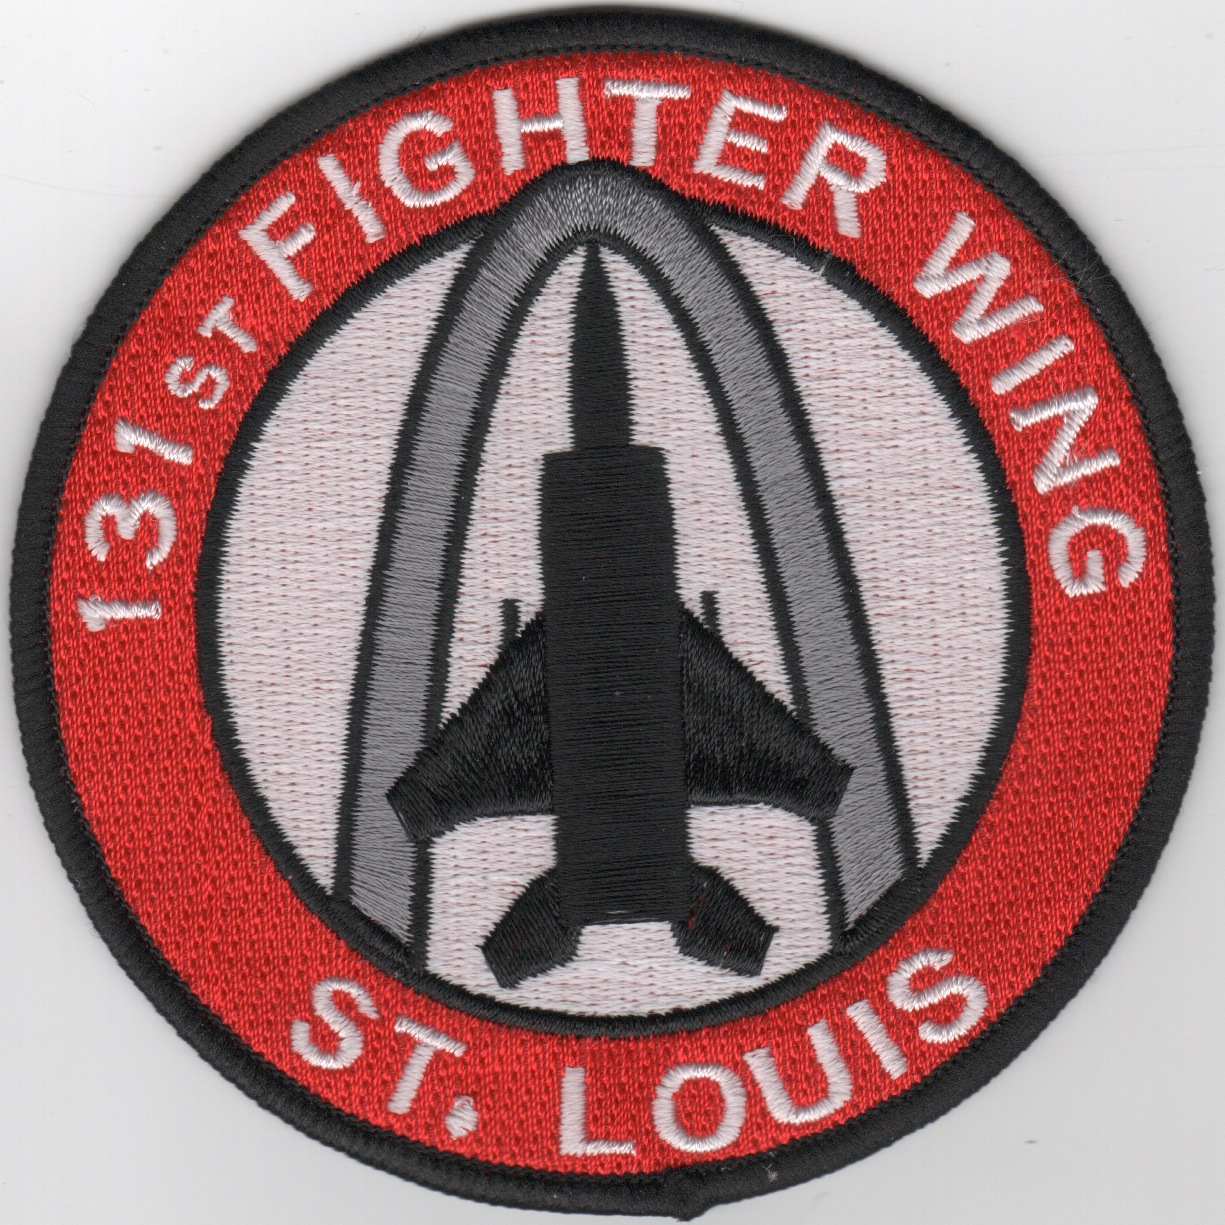 131FW 'St. Louis' Patch (Black F-15)